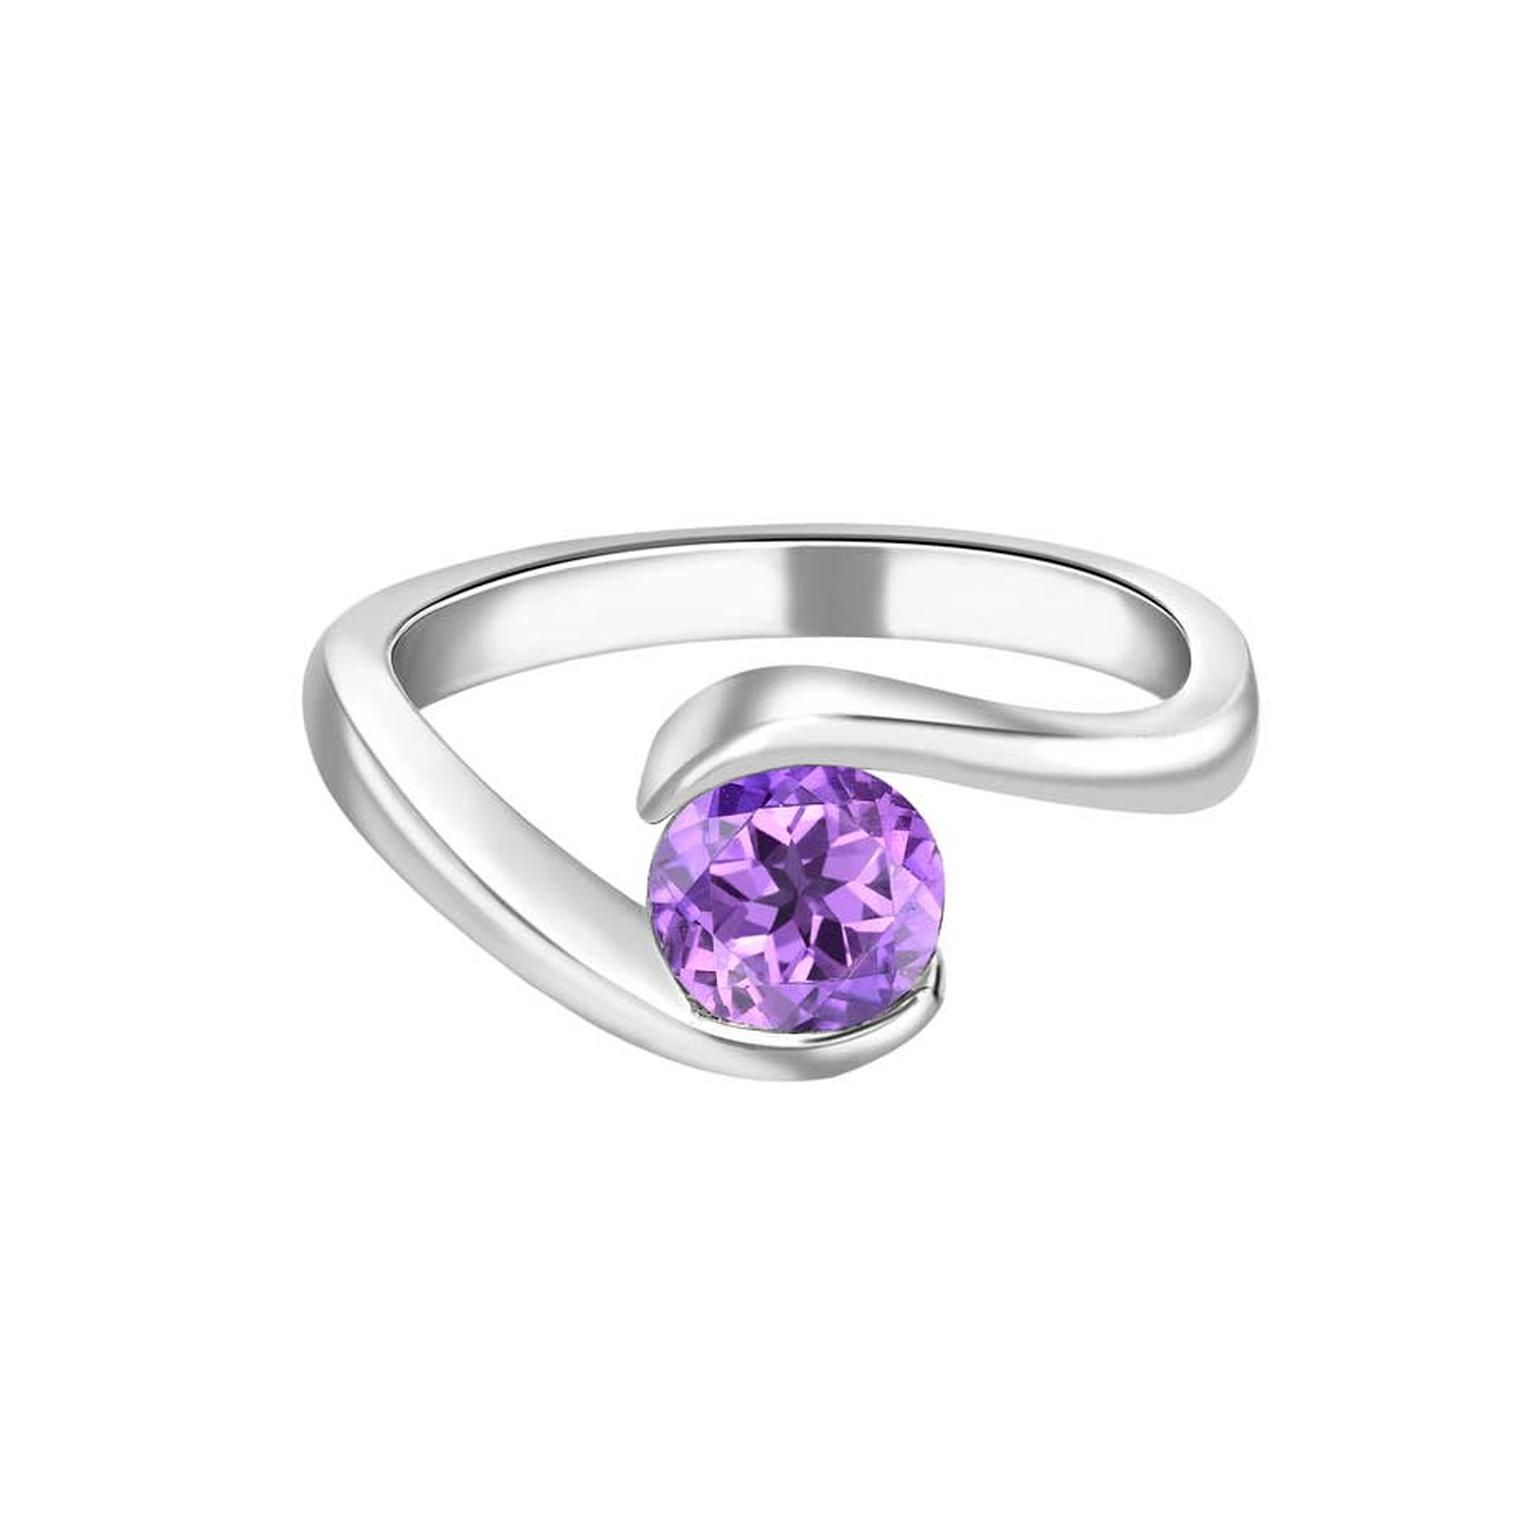 Ingle & Rhode Rhapsody purple sapphire engagement ring in platinum, set with a 0.82ct round-cut purple sapphire from a Fairtrade co-operative in Sri Lanka.